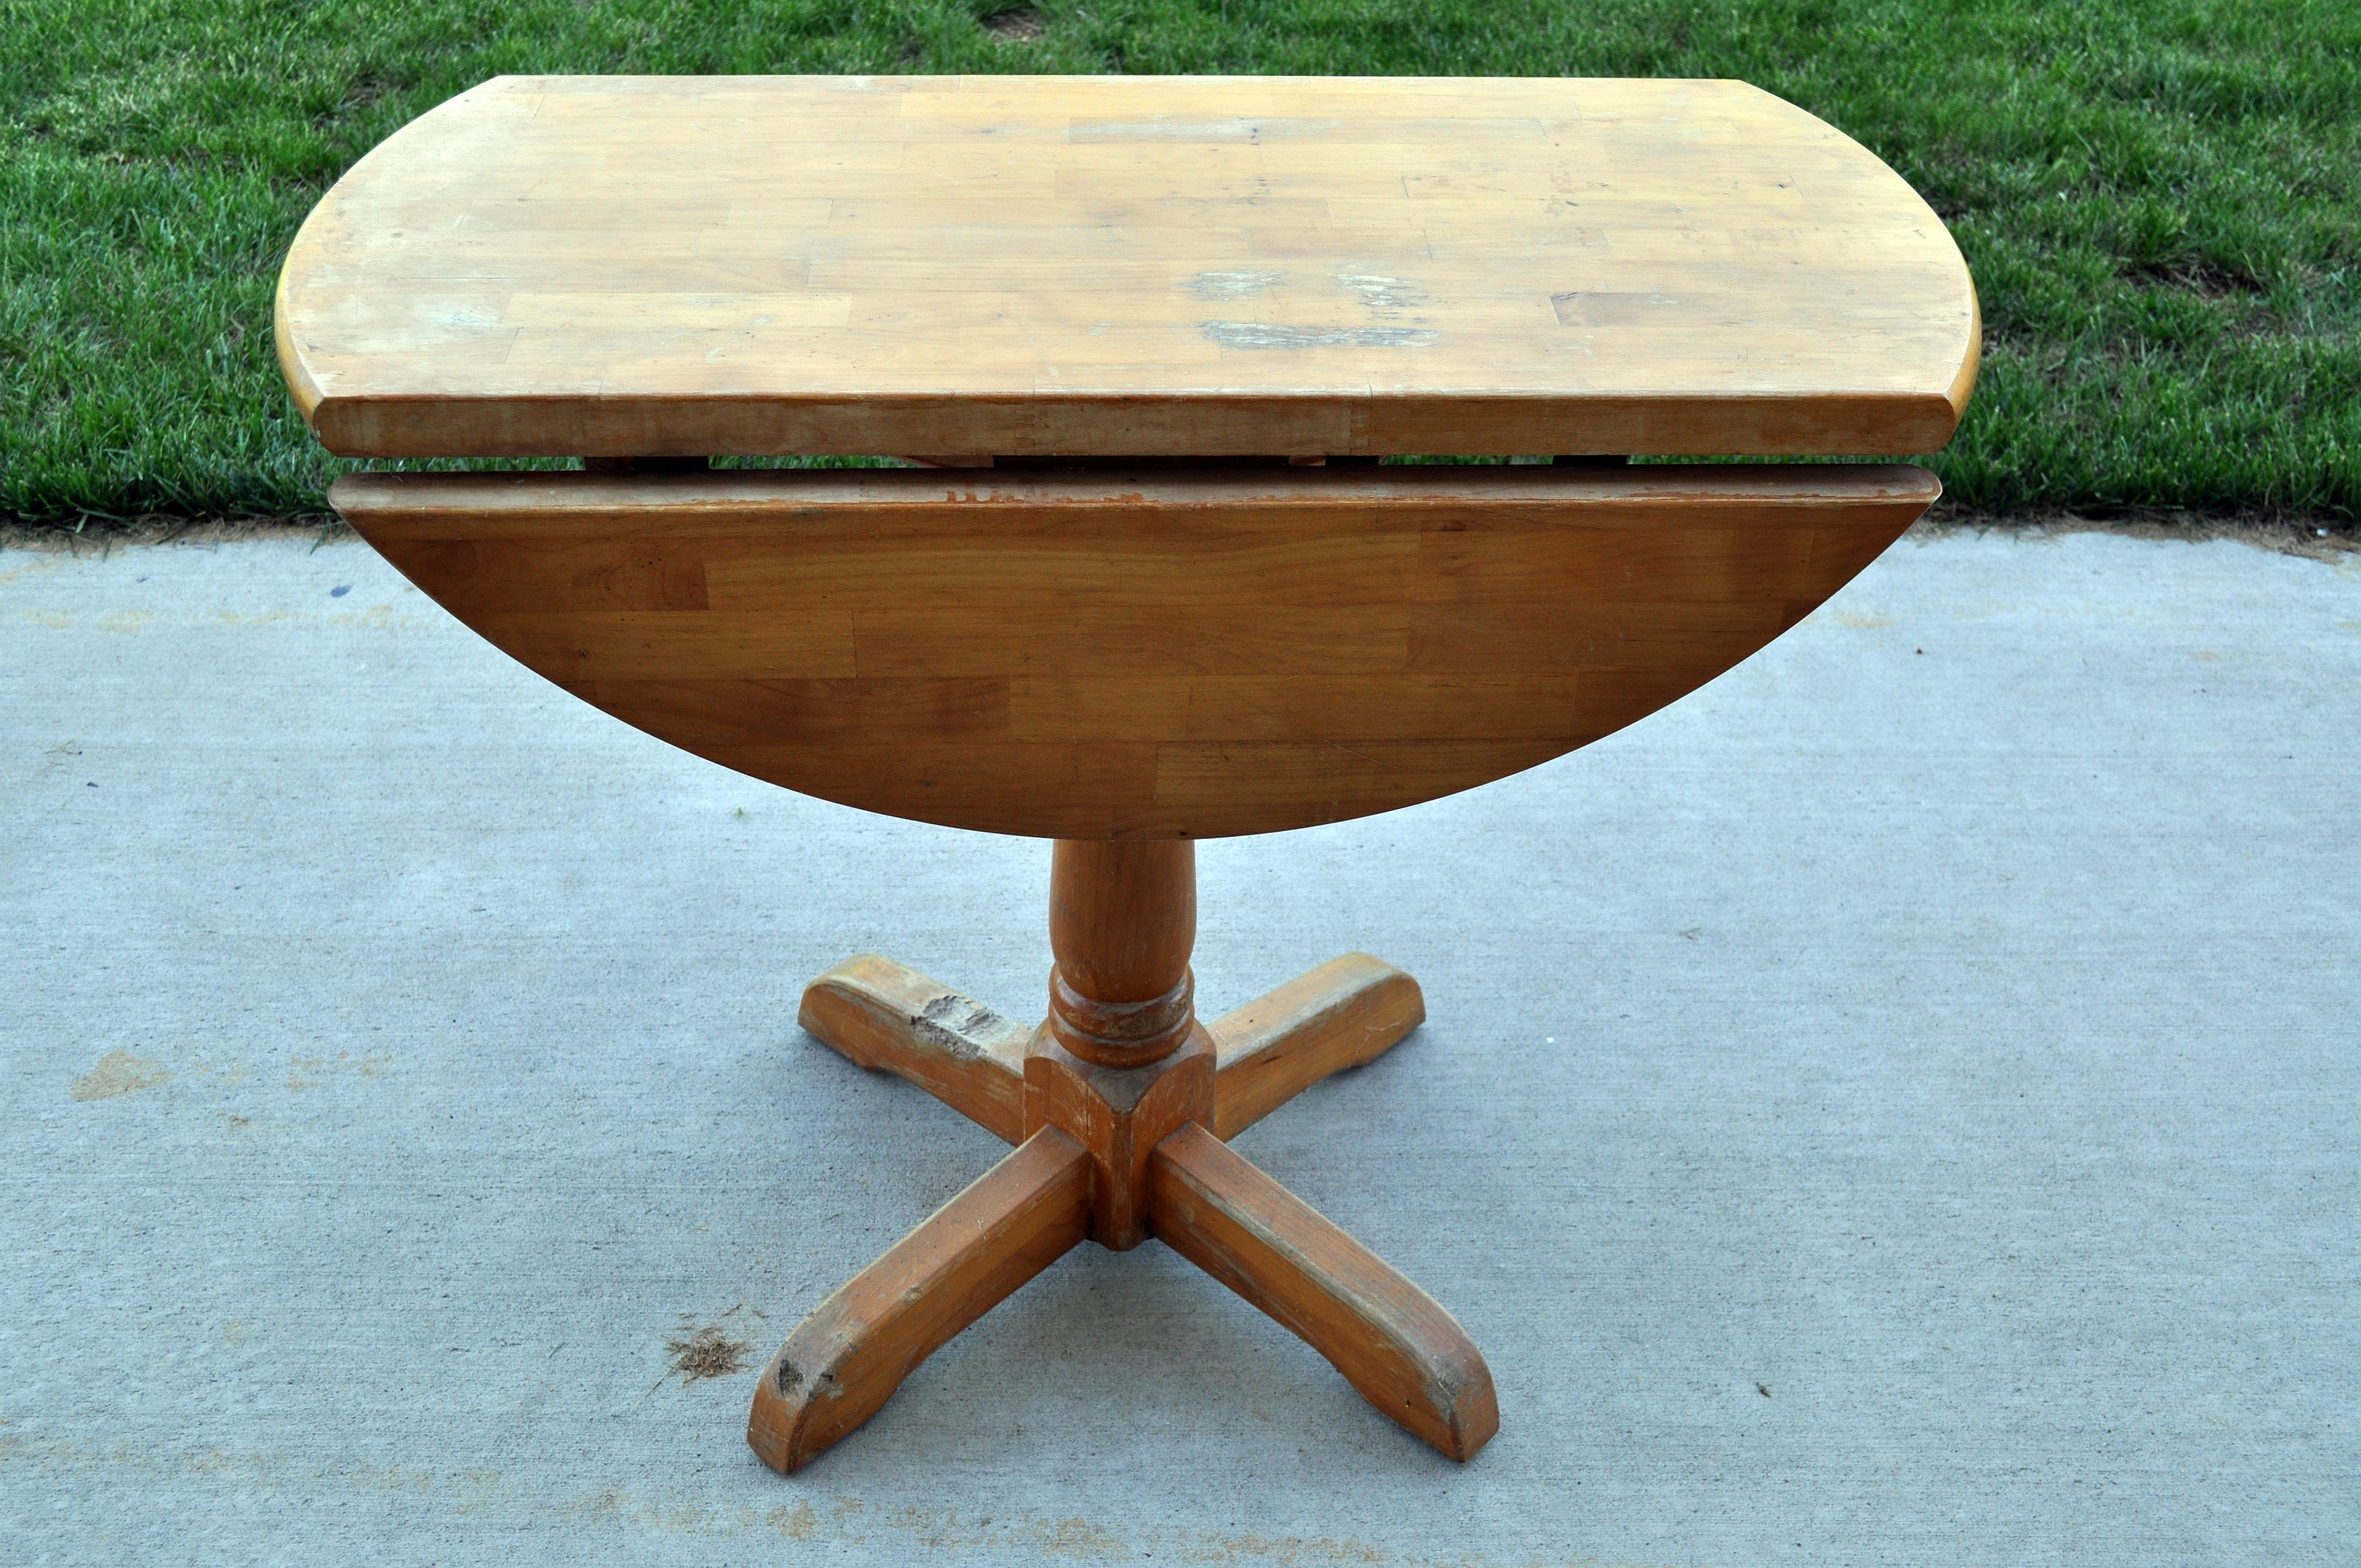 Ordinaire Drop Leaf Table. I Did My Usual Routine. I Sanded It First, Then Painted  It, Then I Sanded The Corners For The Antique Look. The Best Part Is, ...